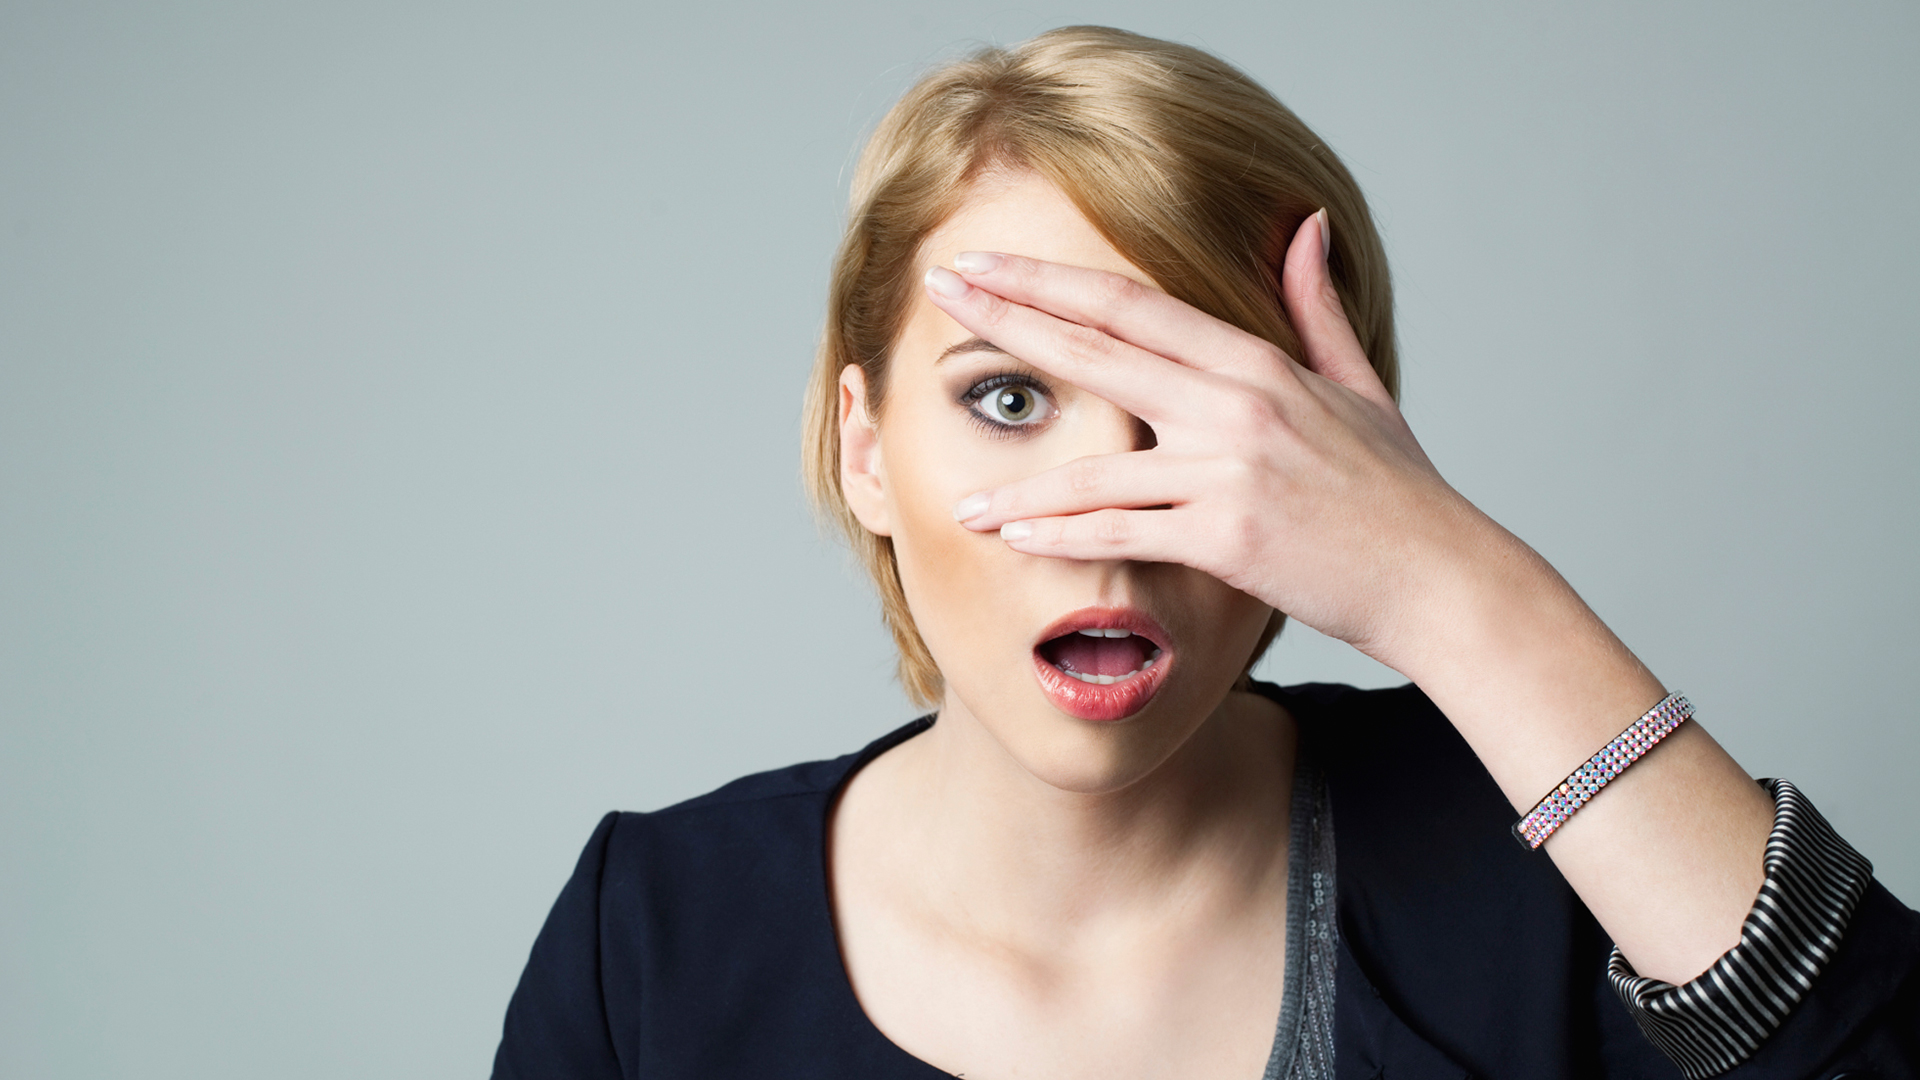 Woman scared and shocked | Sheknows.com